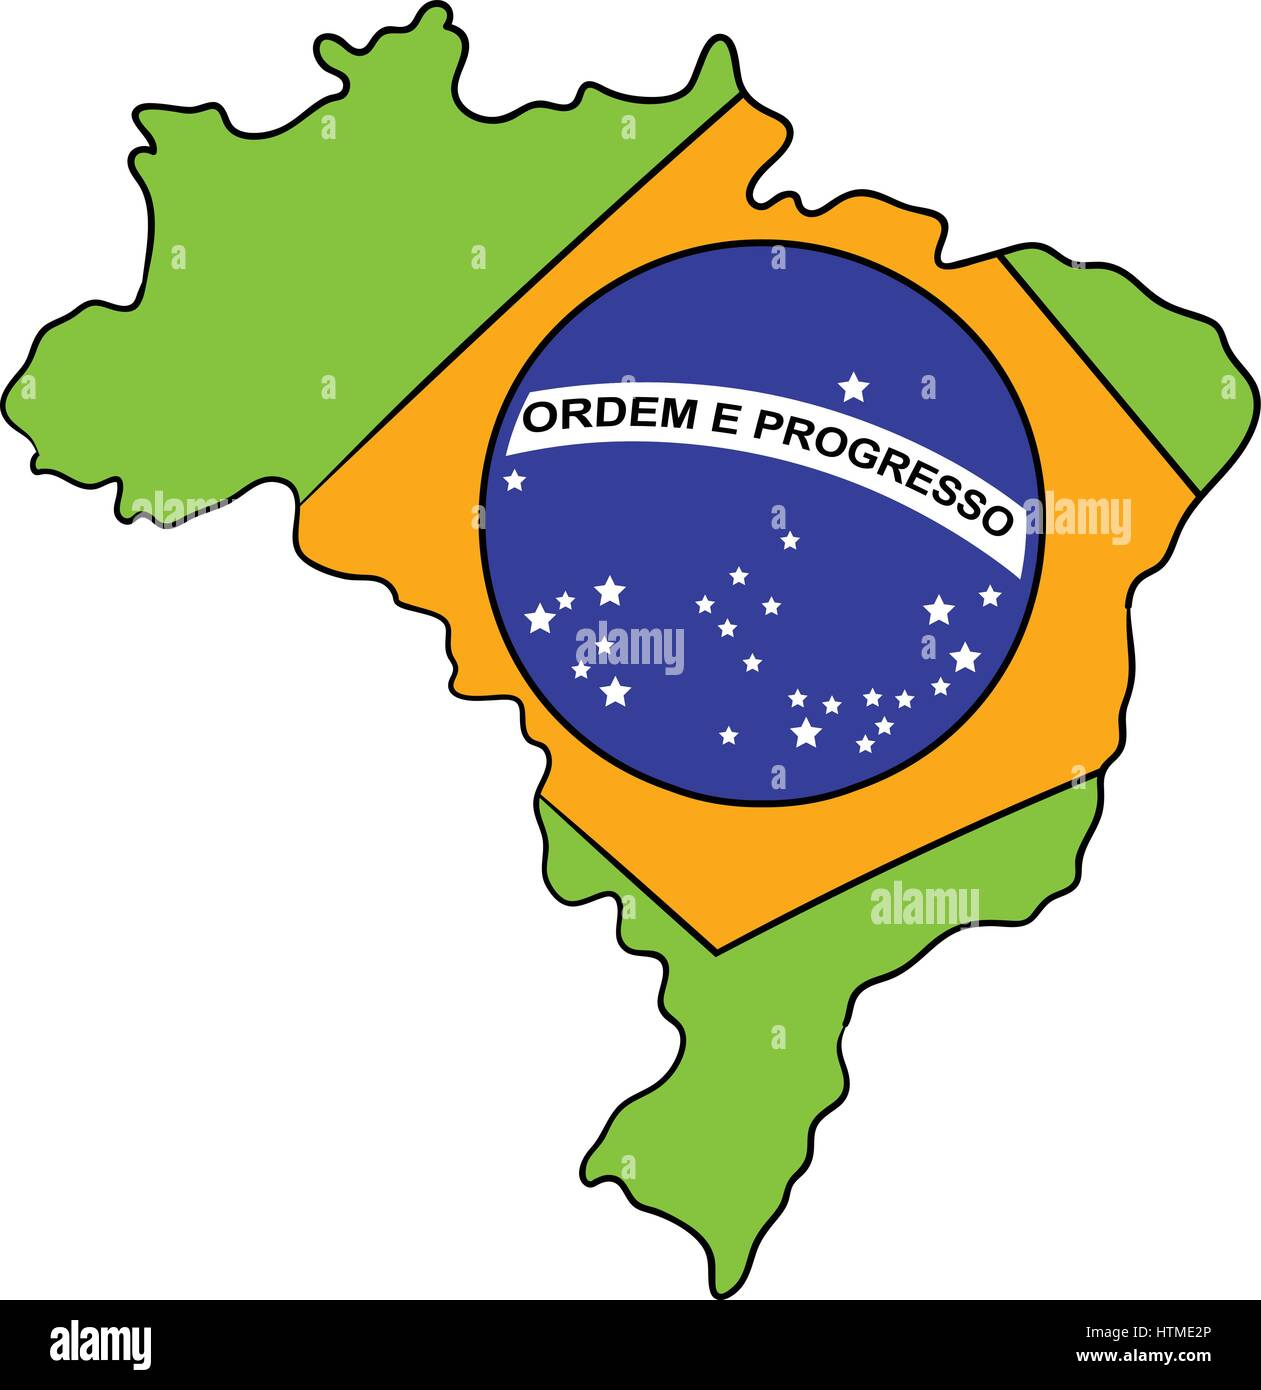 Brazil map and flag icon cartoon Stock Vector Art Illustration